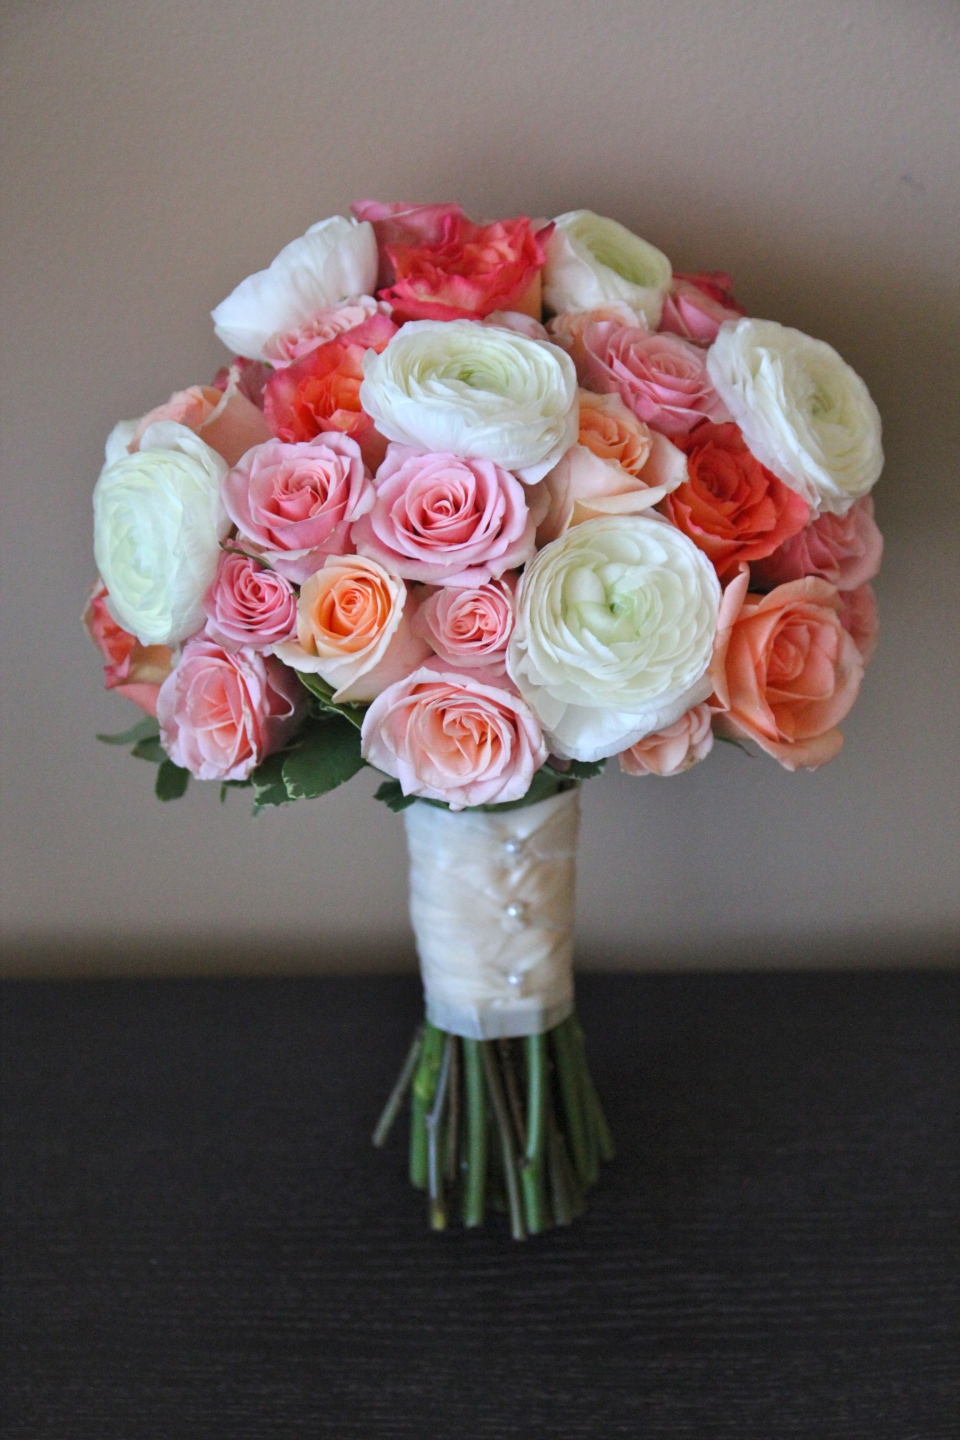 Bridal bouquet of roses, cabbage roses, spray roses & ranunculus in shades of peach, coral & white